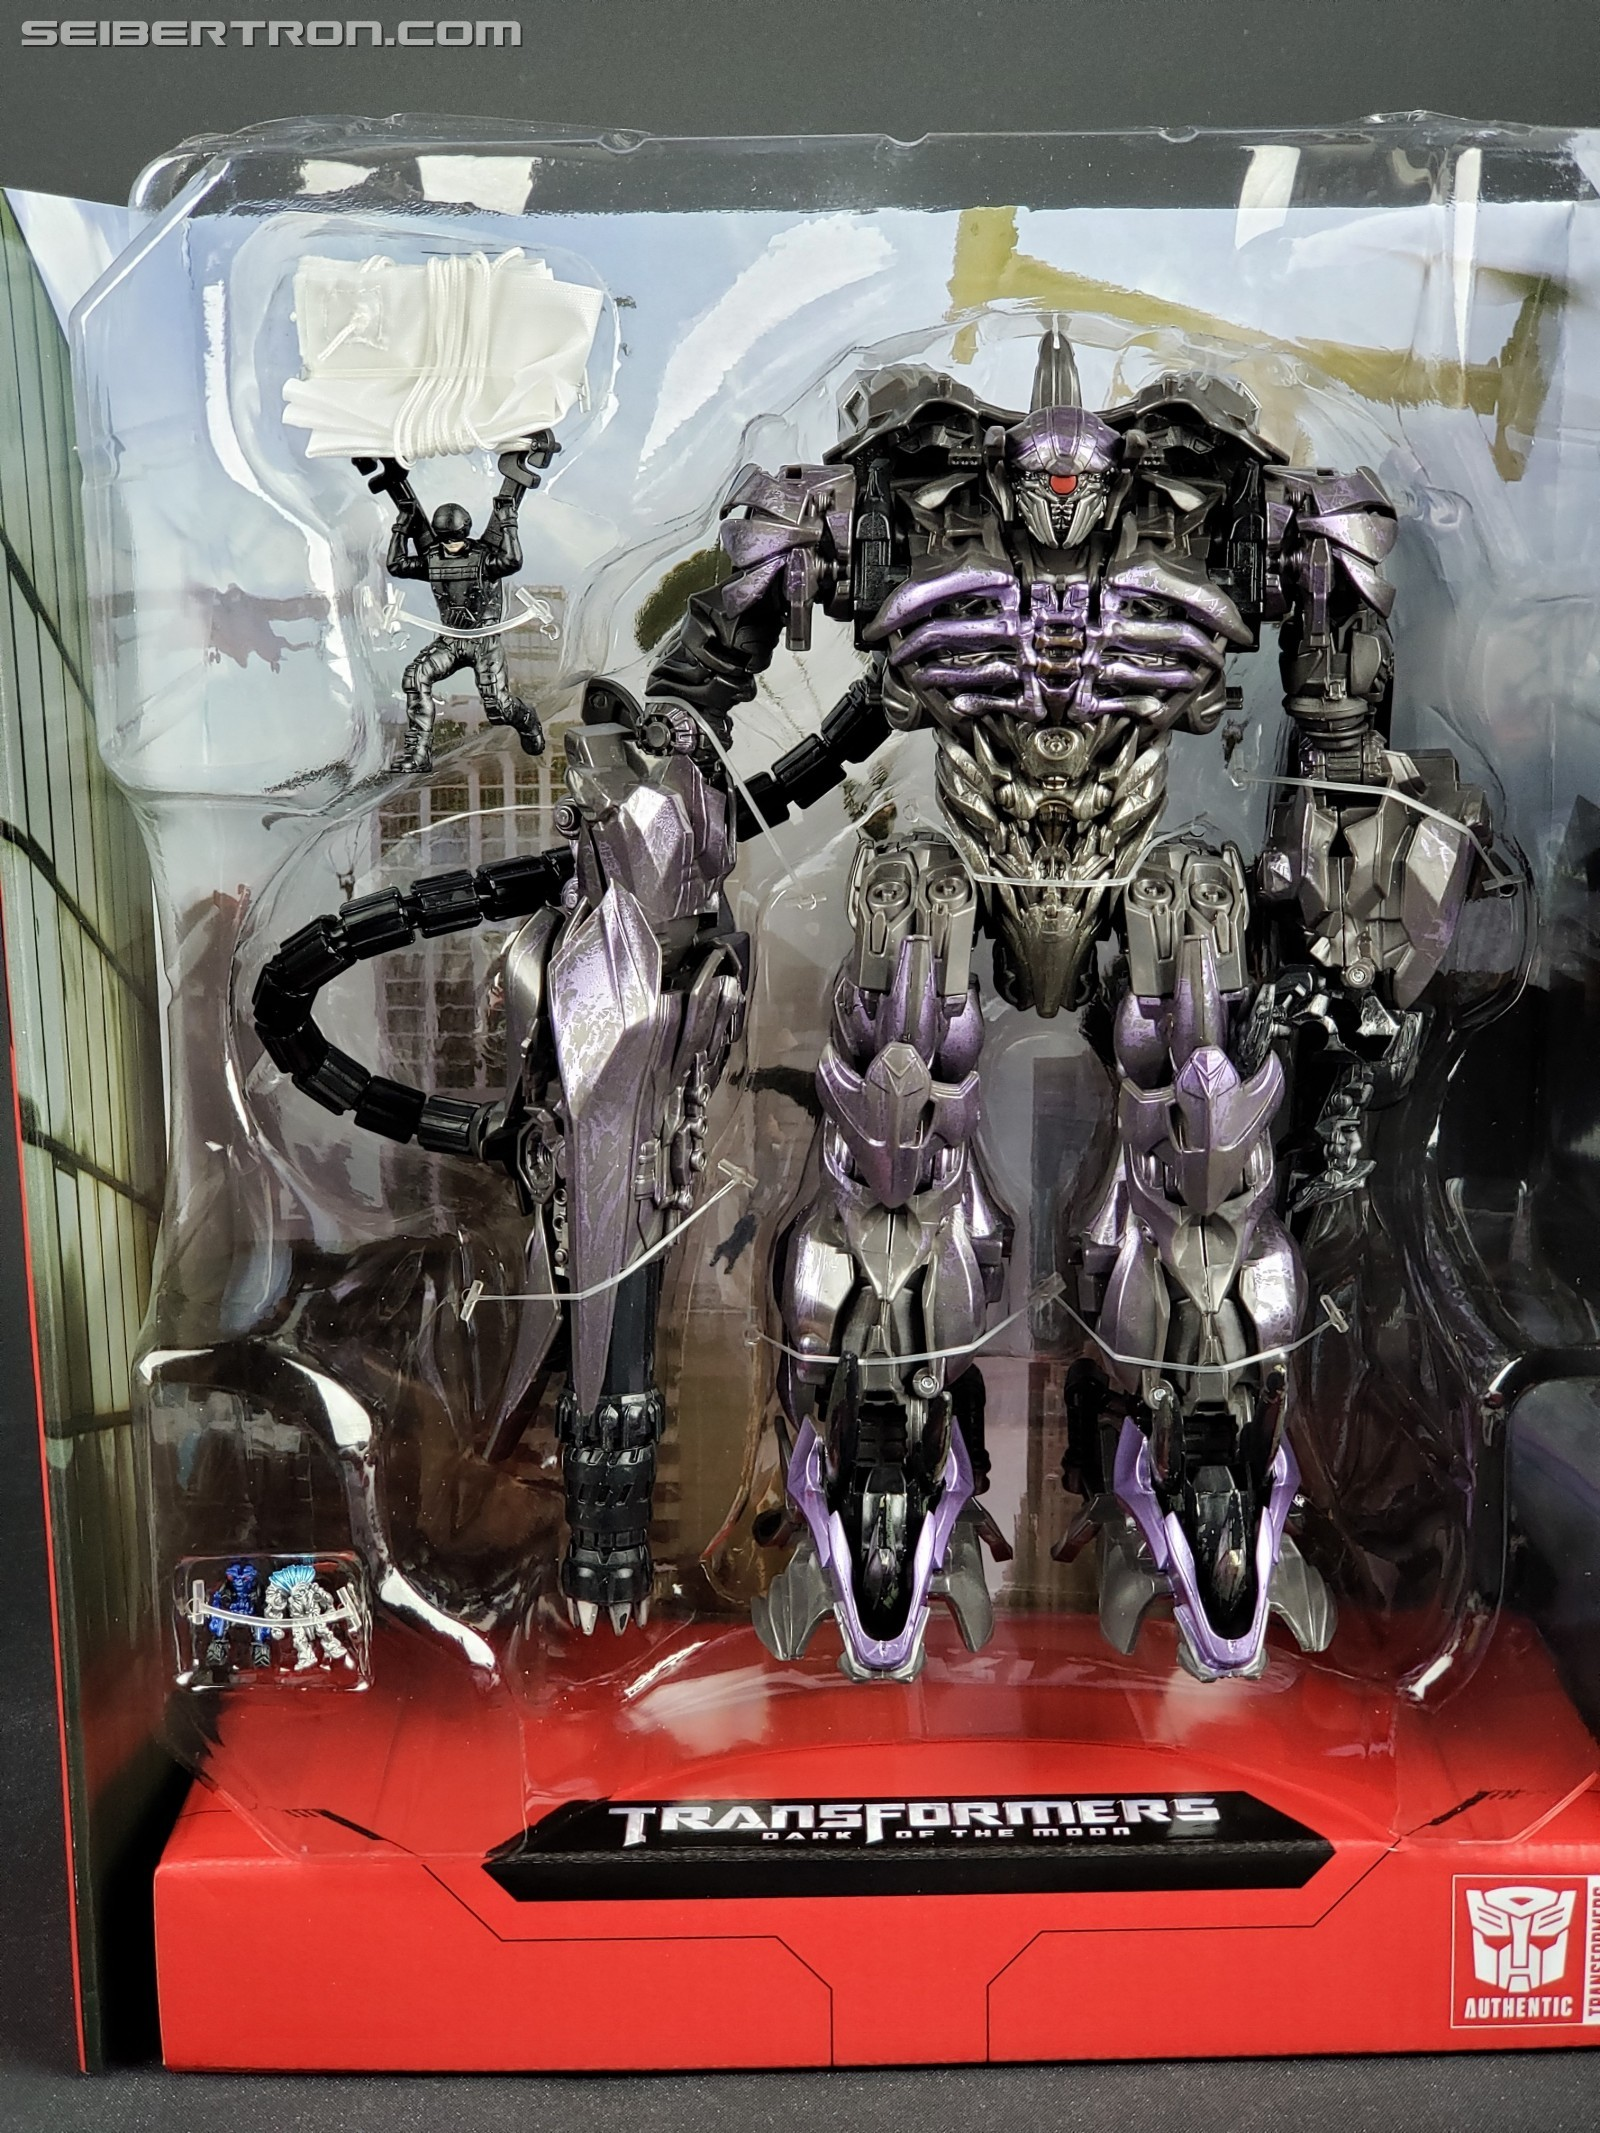 Transformers News: Studio Series Brains and Wheelie are Much Smaller than as Shown on Box